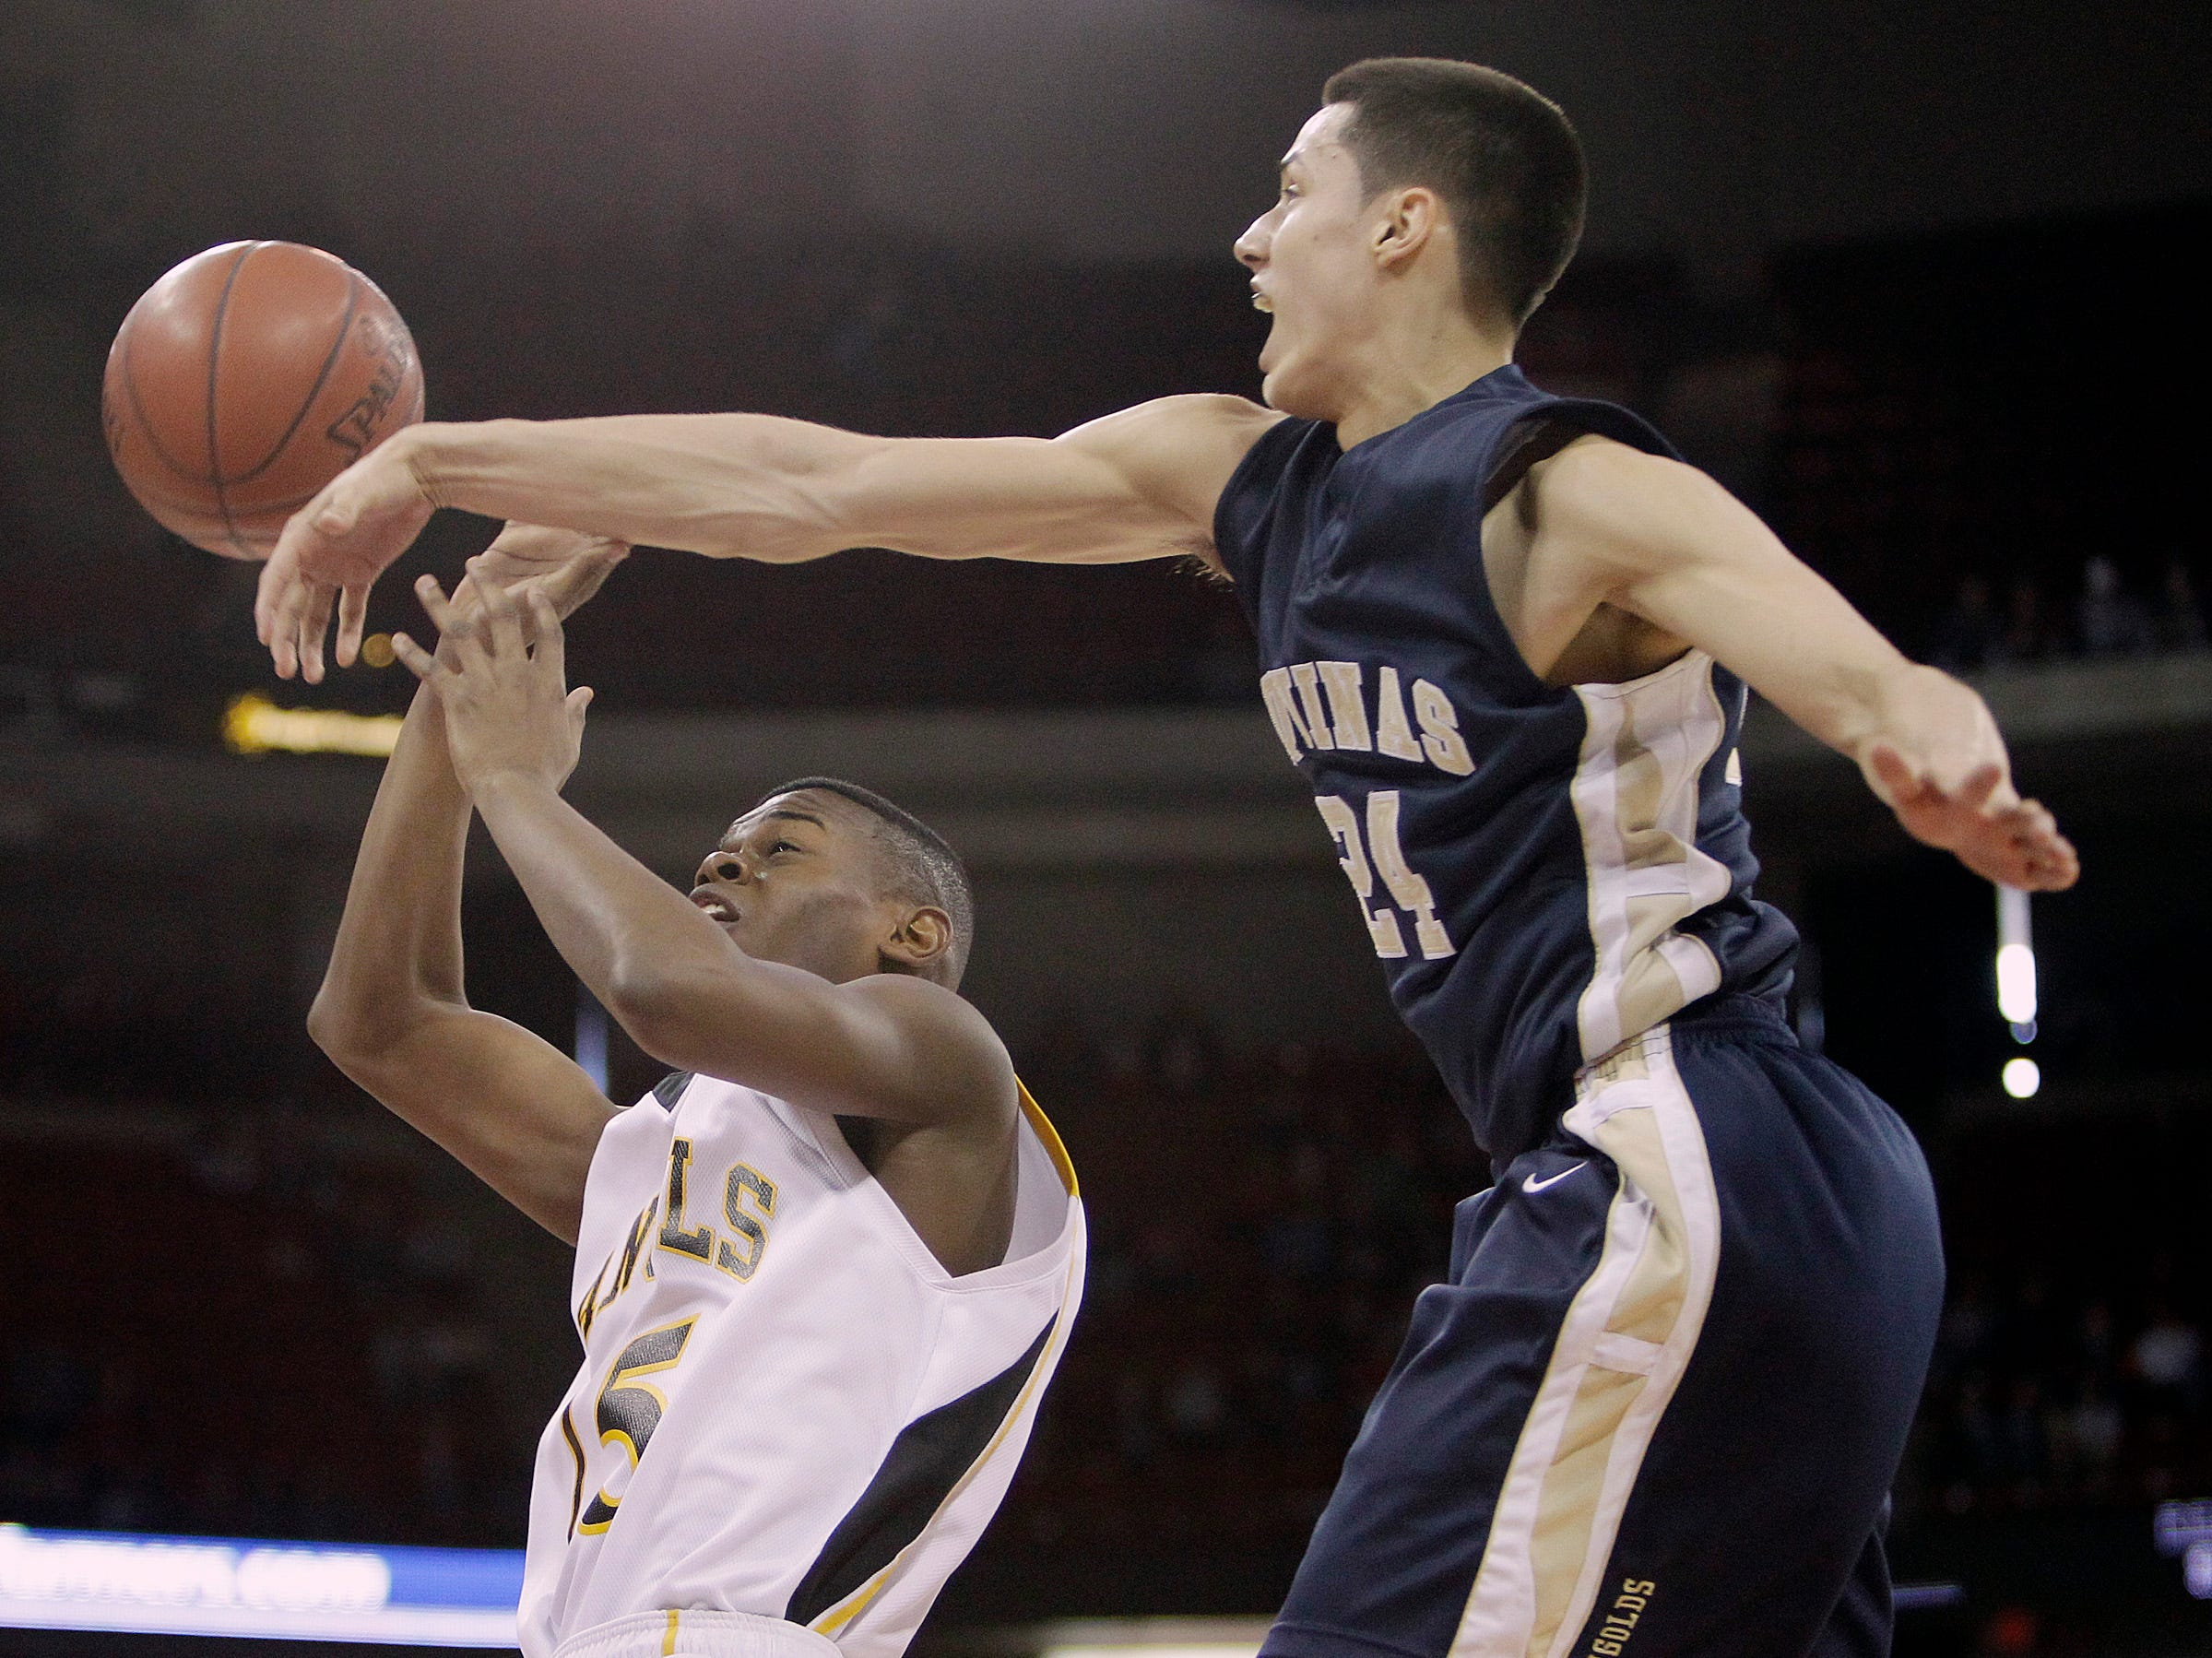 Aquinas's Bronson Koenig rejects a shot by  Racine St. Catherine's  Chris Souter during the WIAA state basketball tournament at the Kohl Center Saturday, March 19, 2011.